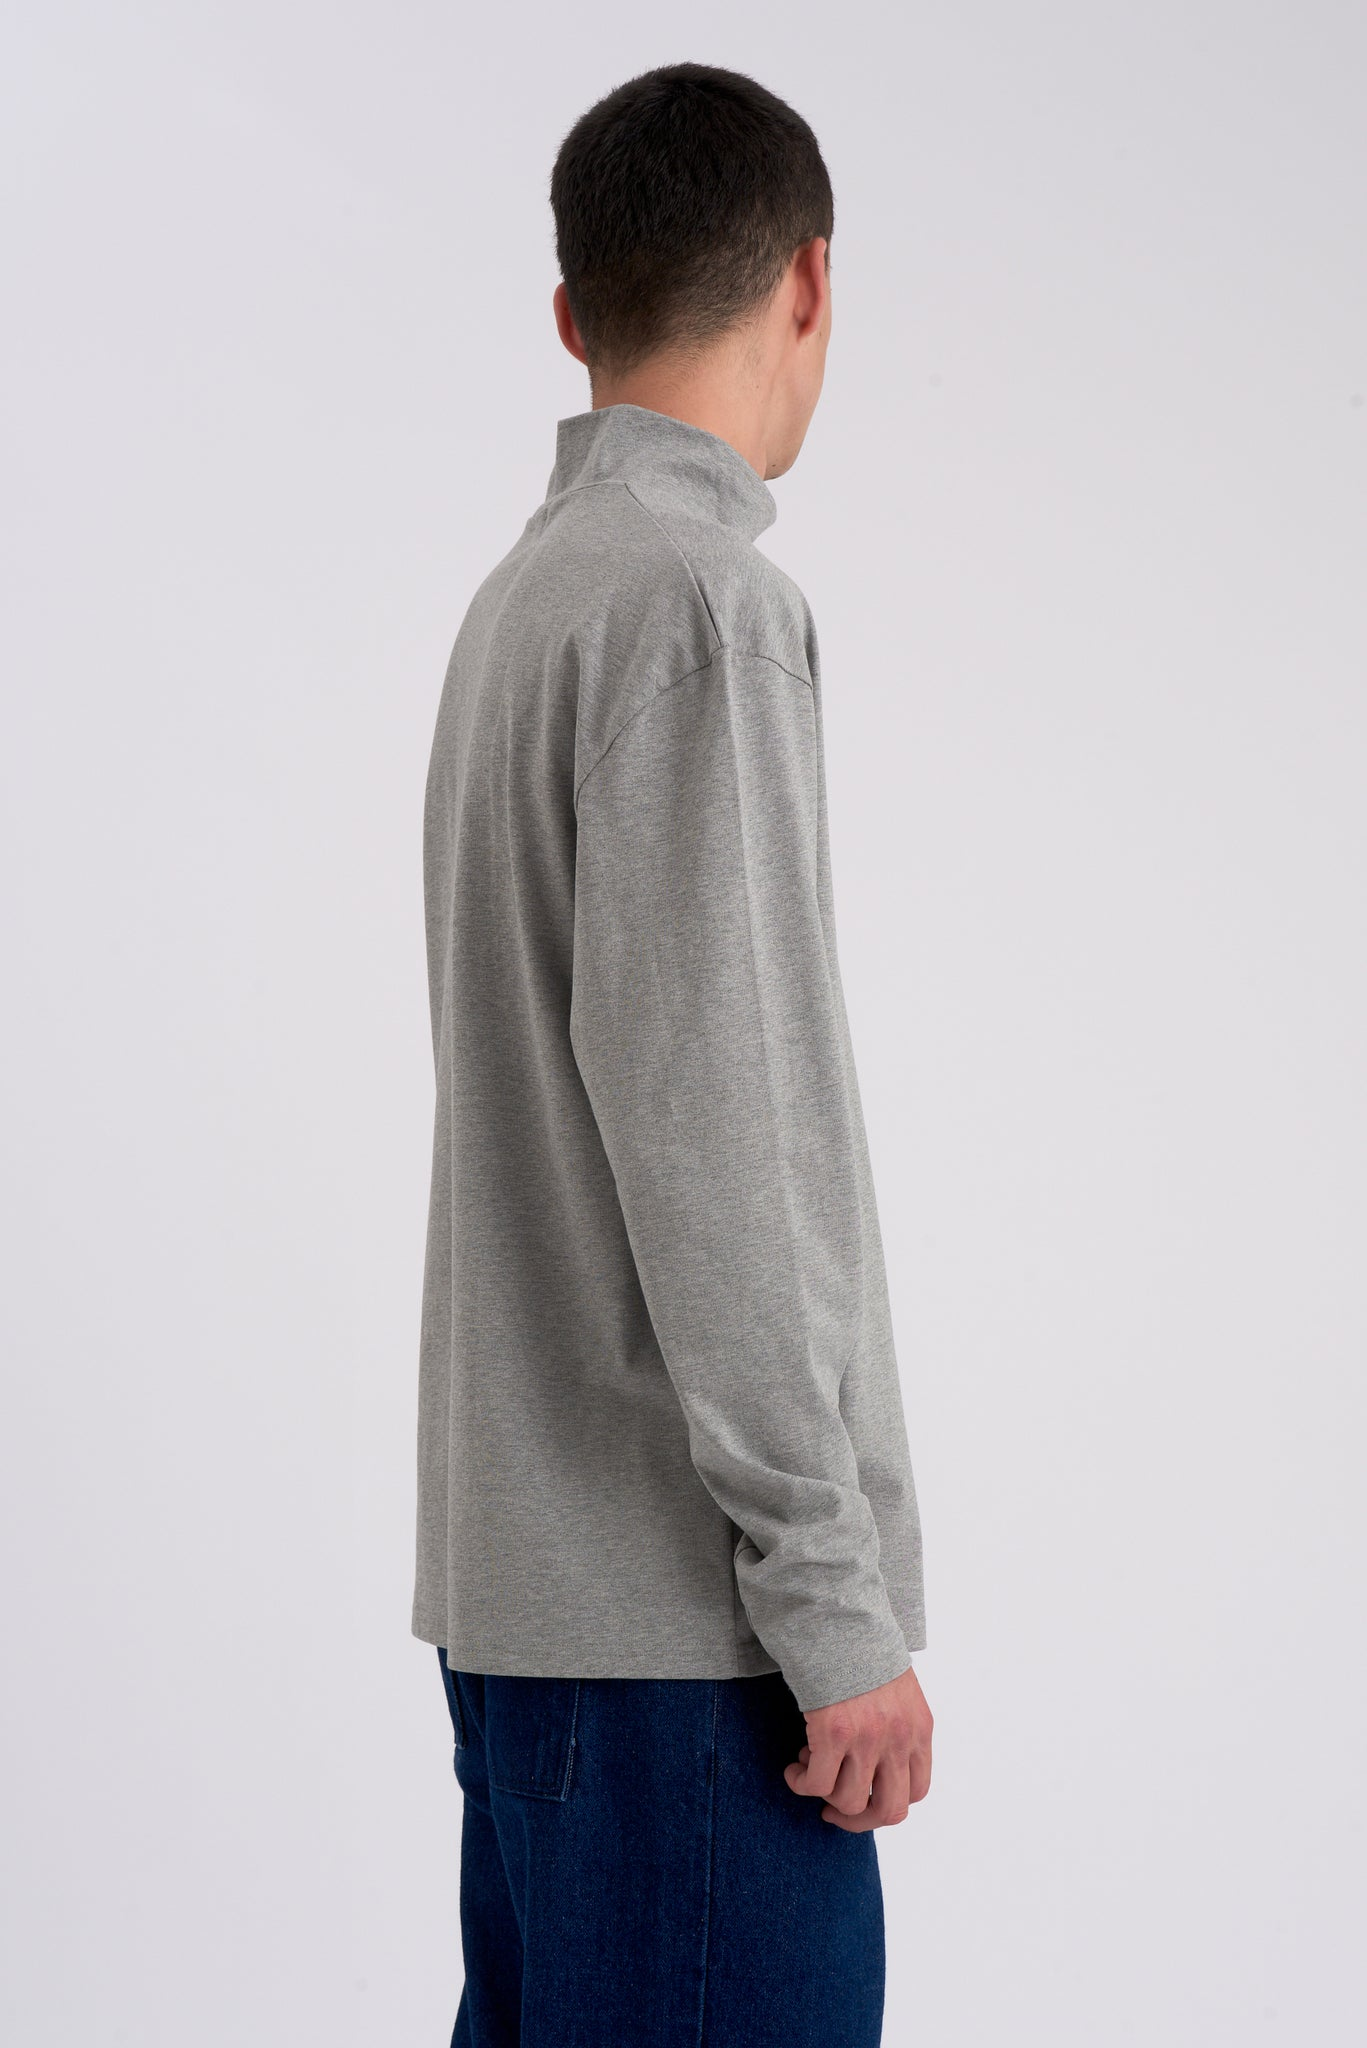 Tate Grey Long-sleeve Turtleneck - Arte Antwerp